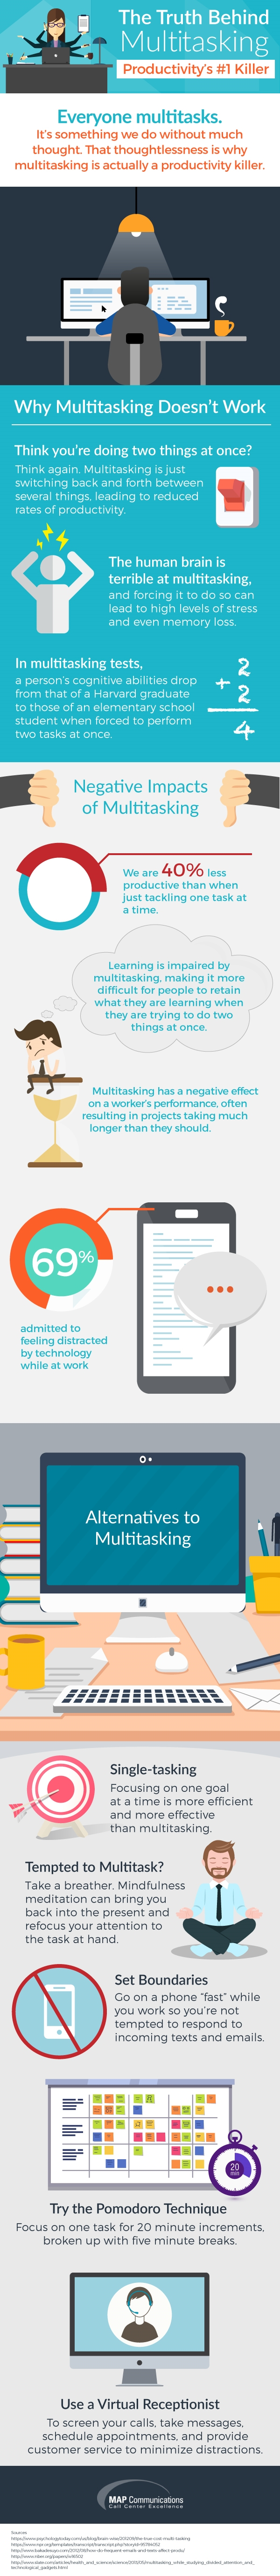 The Sad Truth Behind Multitasking: Productivity's #1 Killer [Infographic]